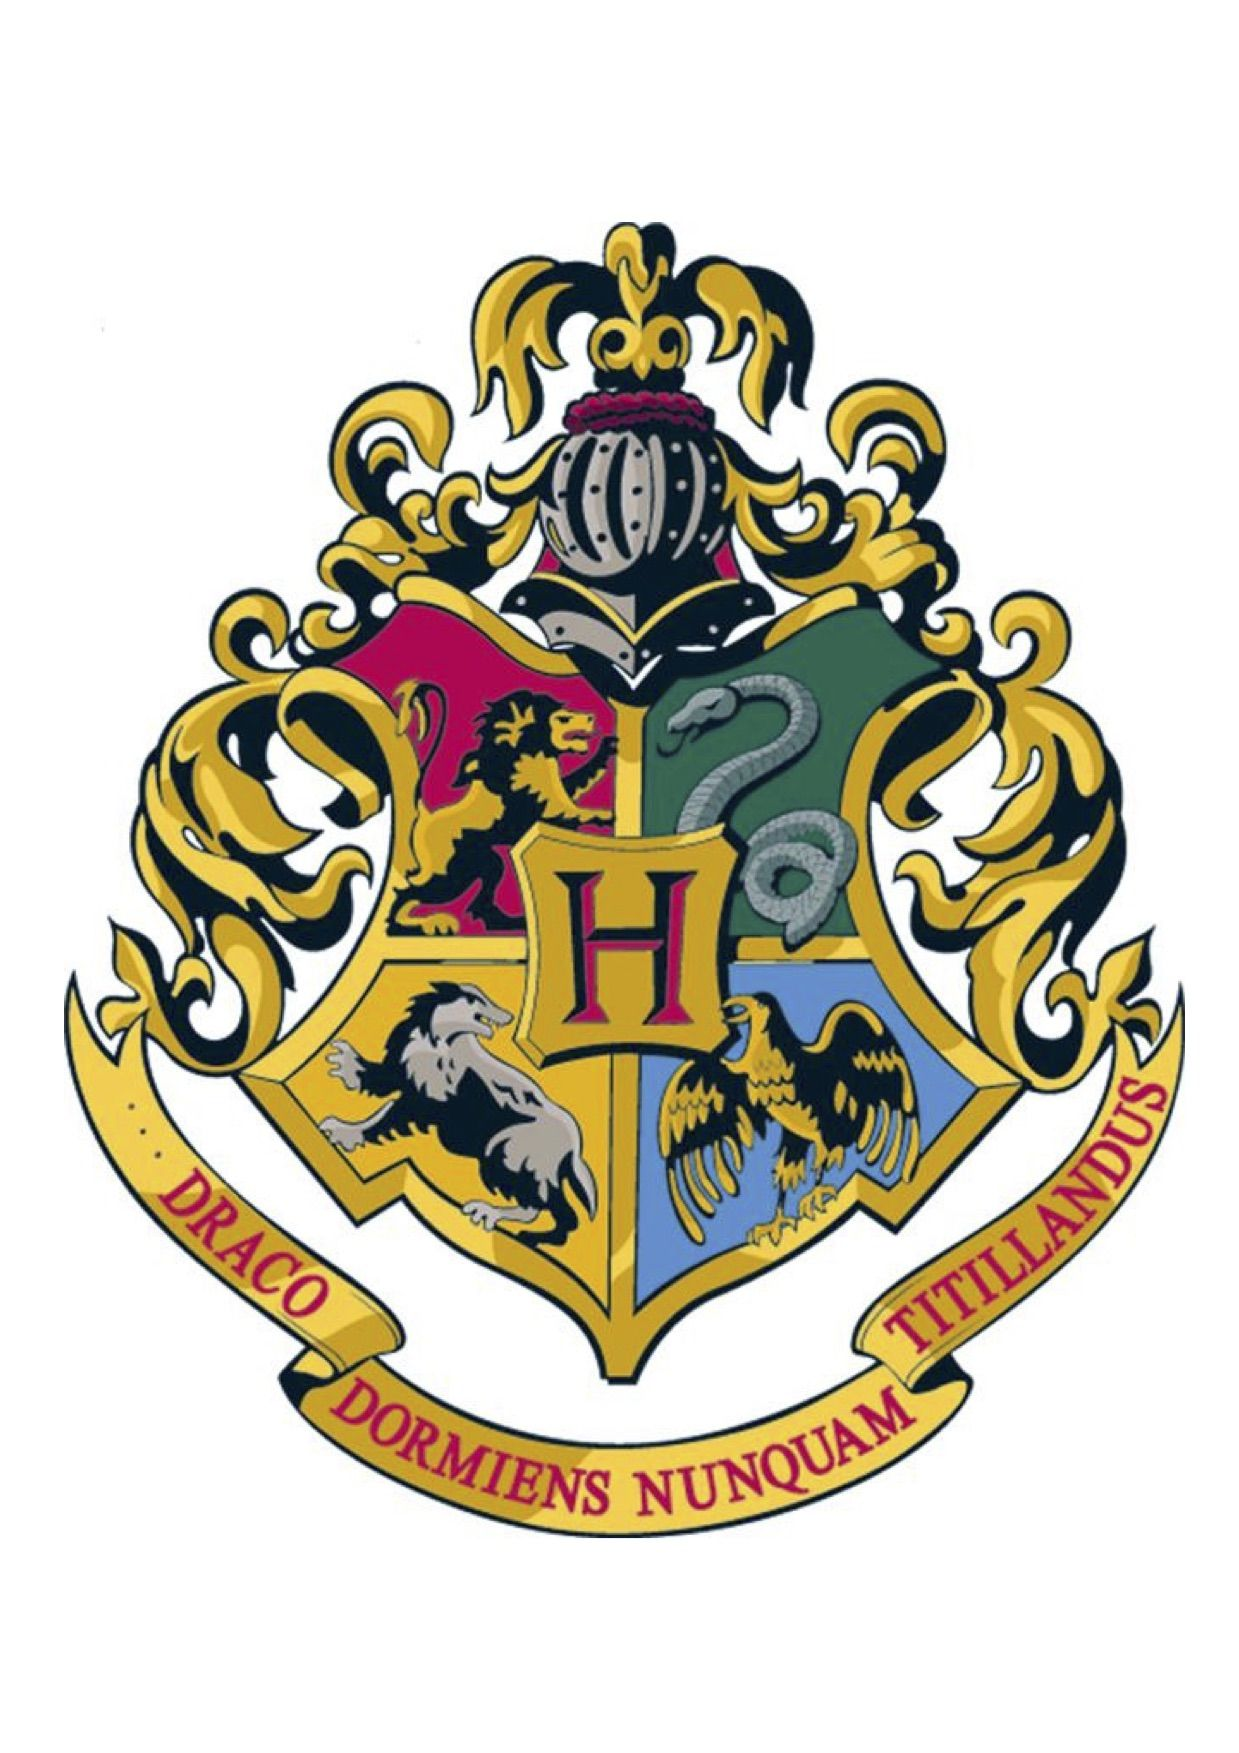 Harry Potter Hogwarts School Crest Printable Jpg 1239x1753 Gryffindor